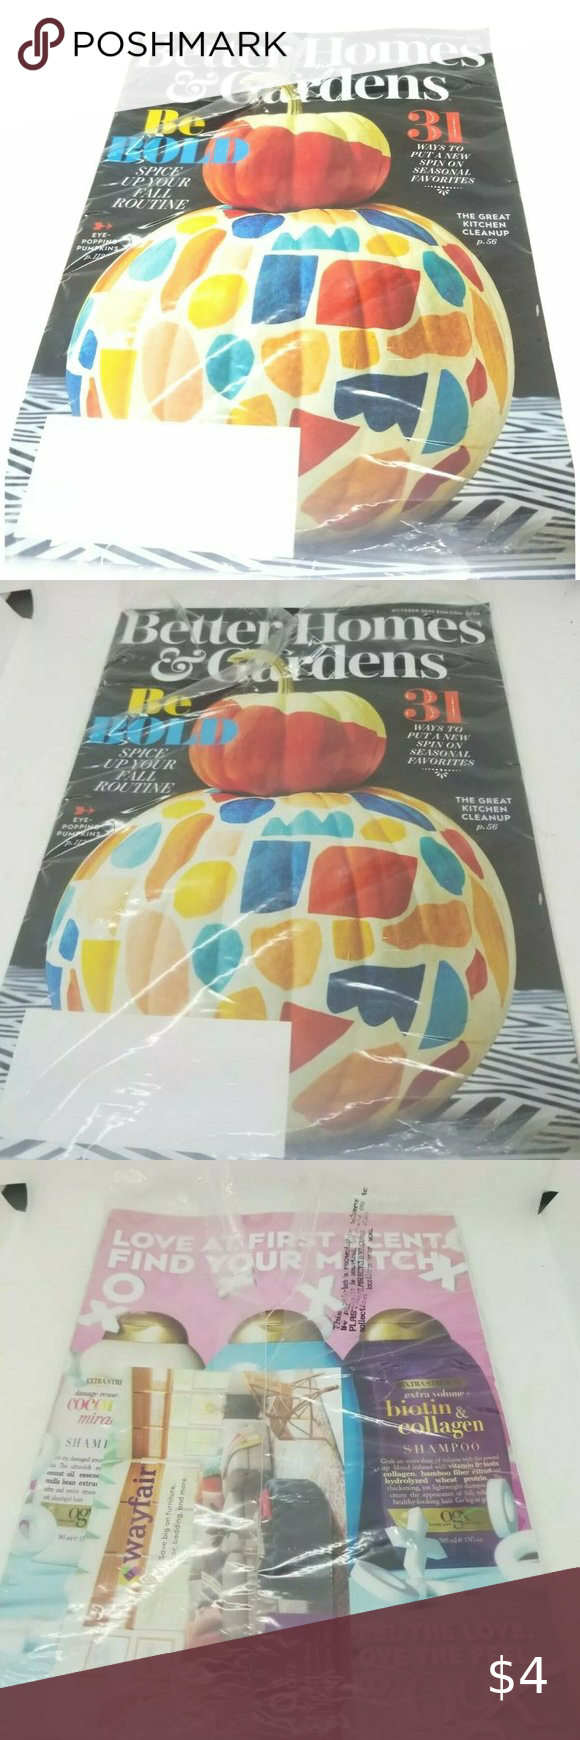 0d2bb6d429a2cac339aff039e64c855f - Better Homes And Gardens Fall Decorating Magazine